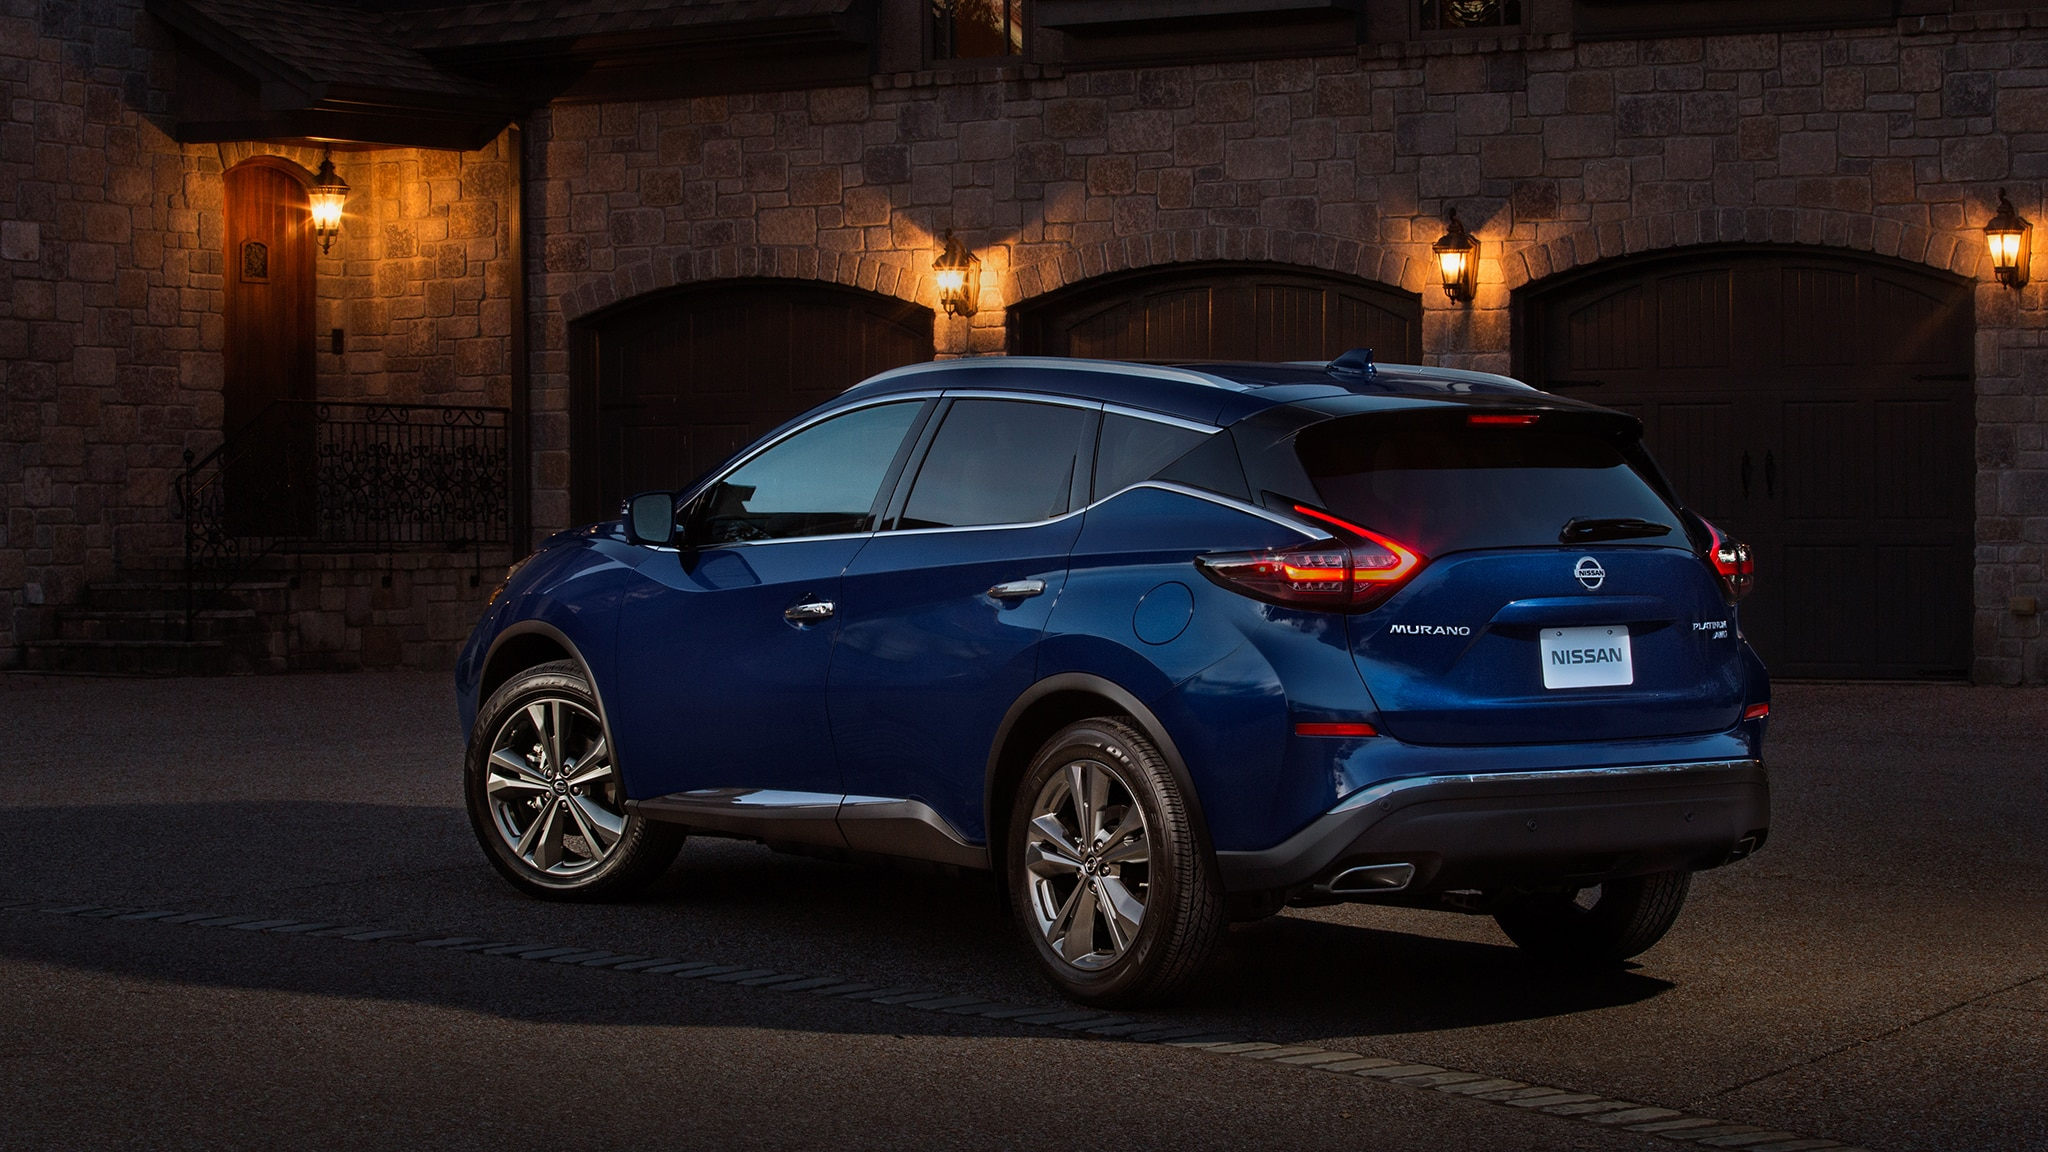 2019 Nissan Murano First Drive Review: Still Comfy and ...